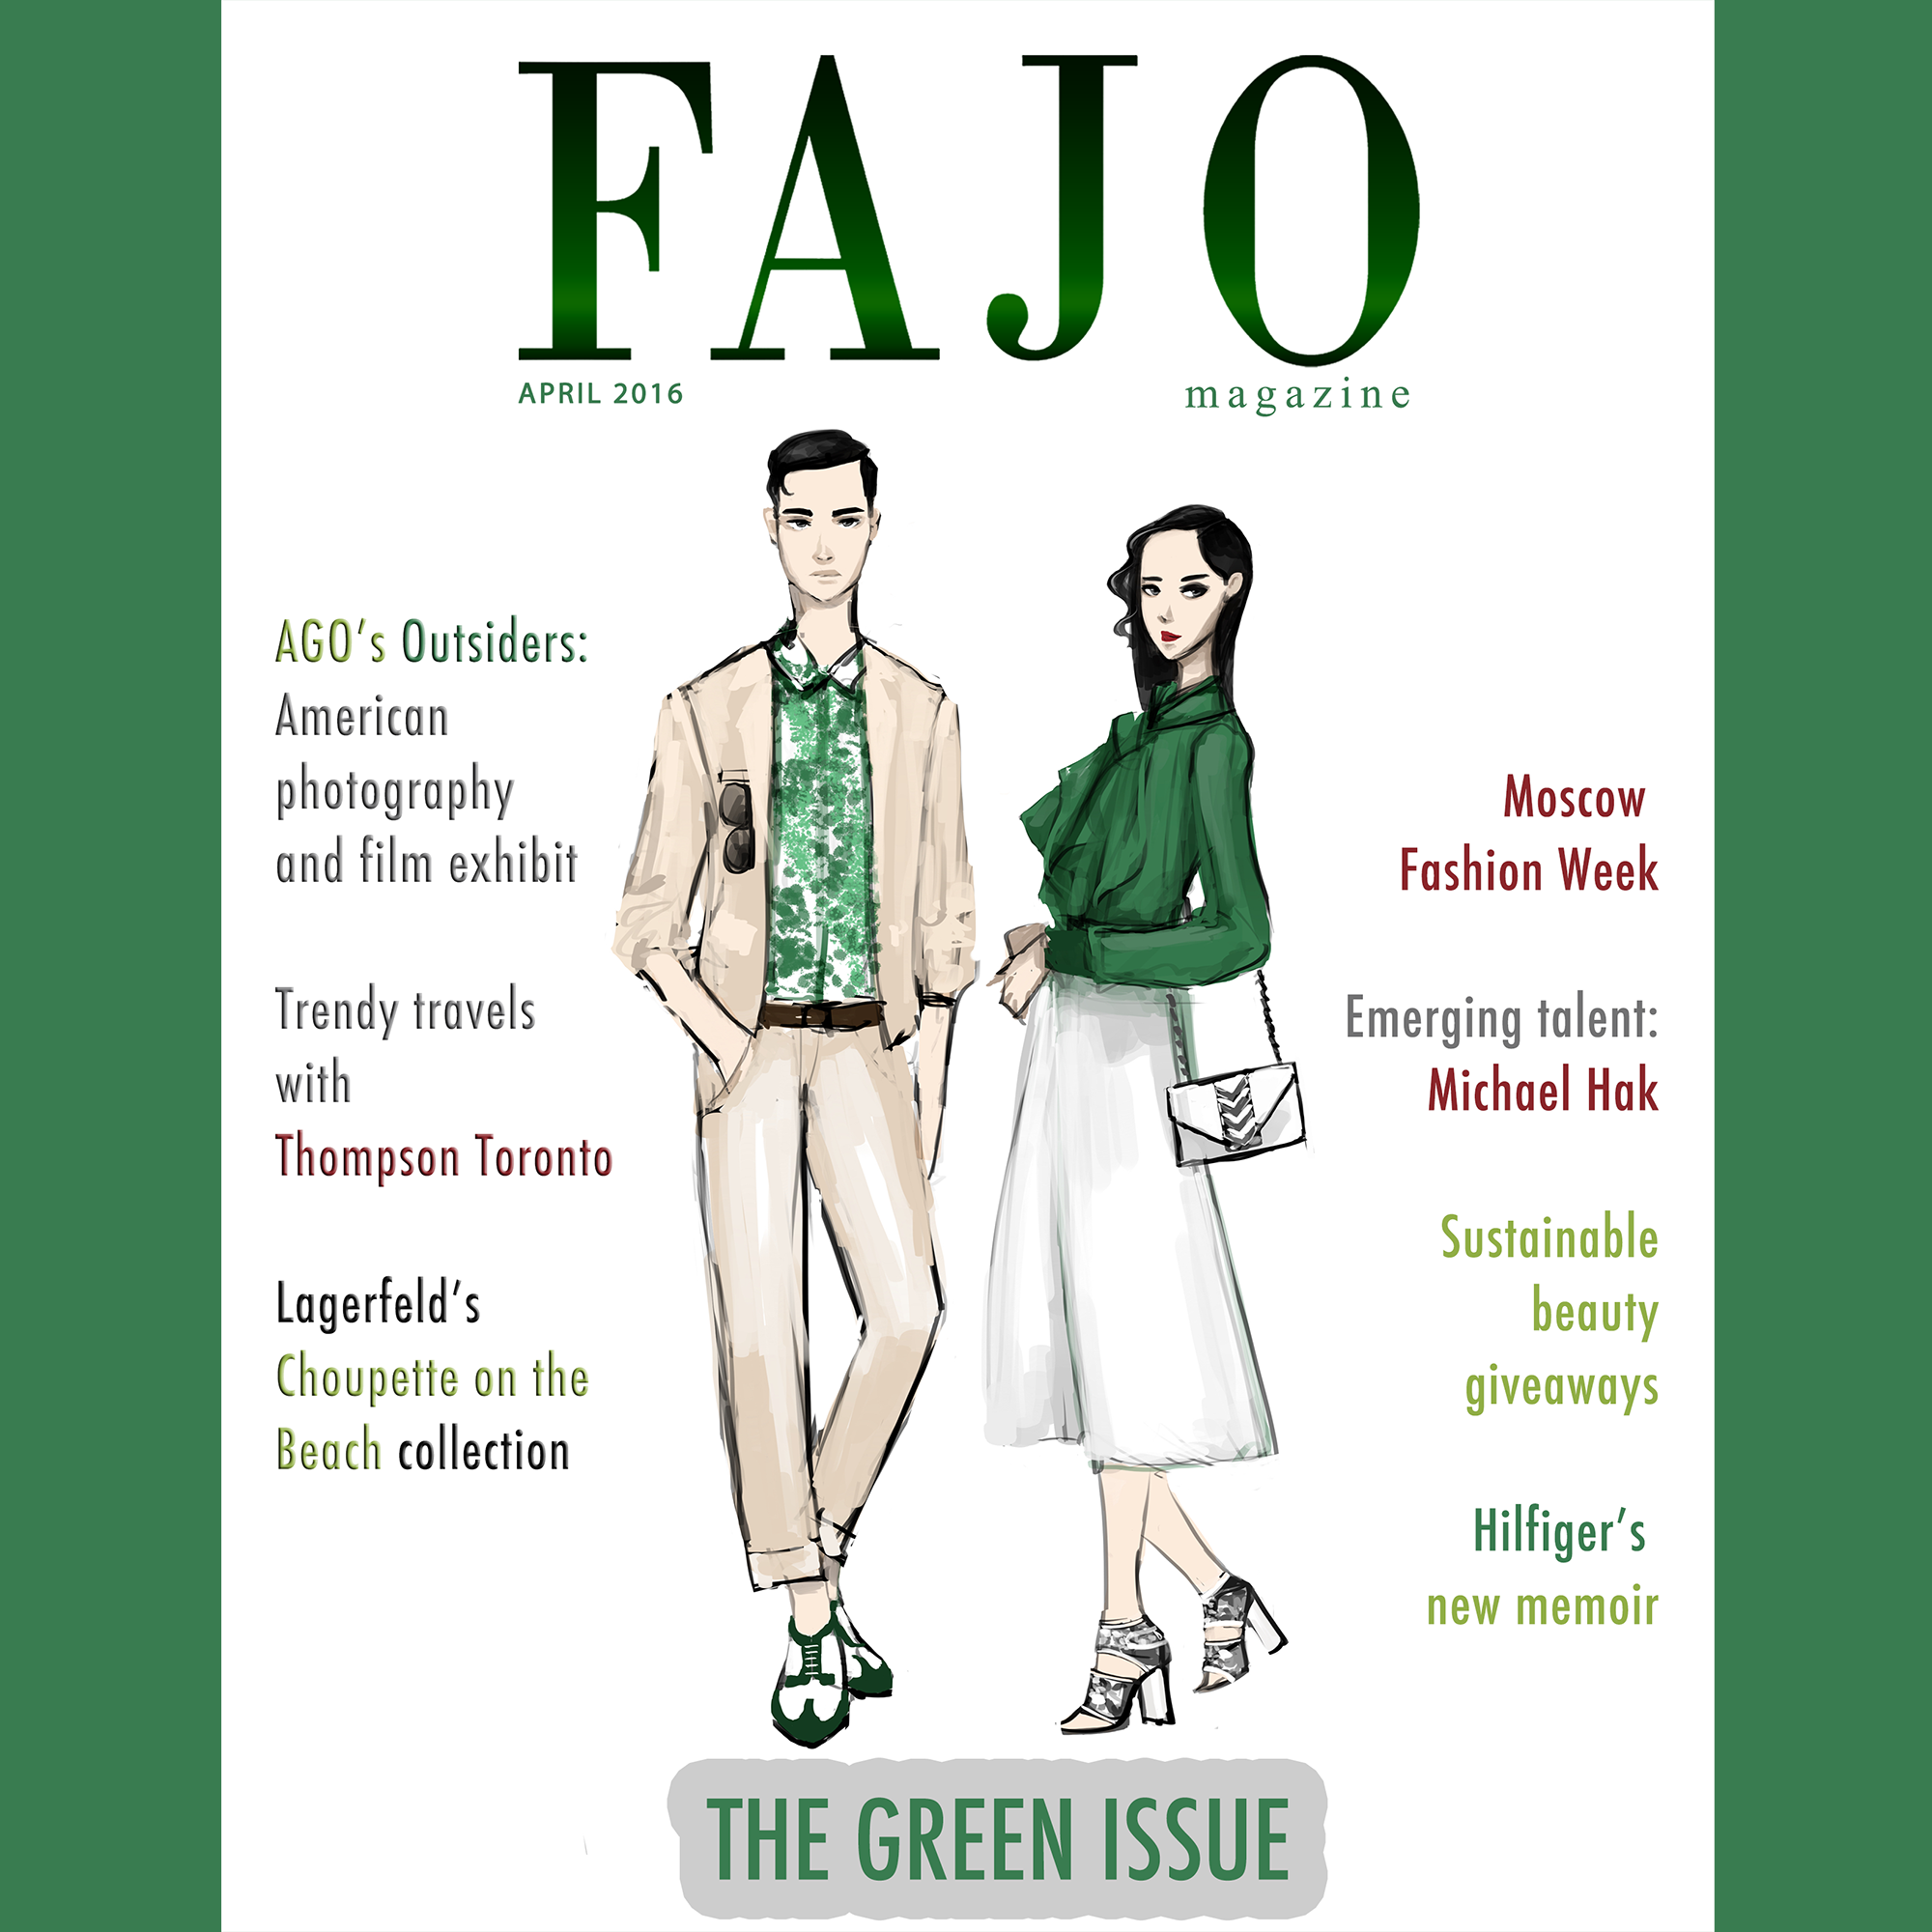 For The Green Issue, Hak created several exclusive illustrations for FAJO, including the one on the cover.